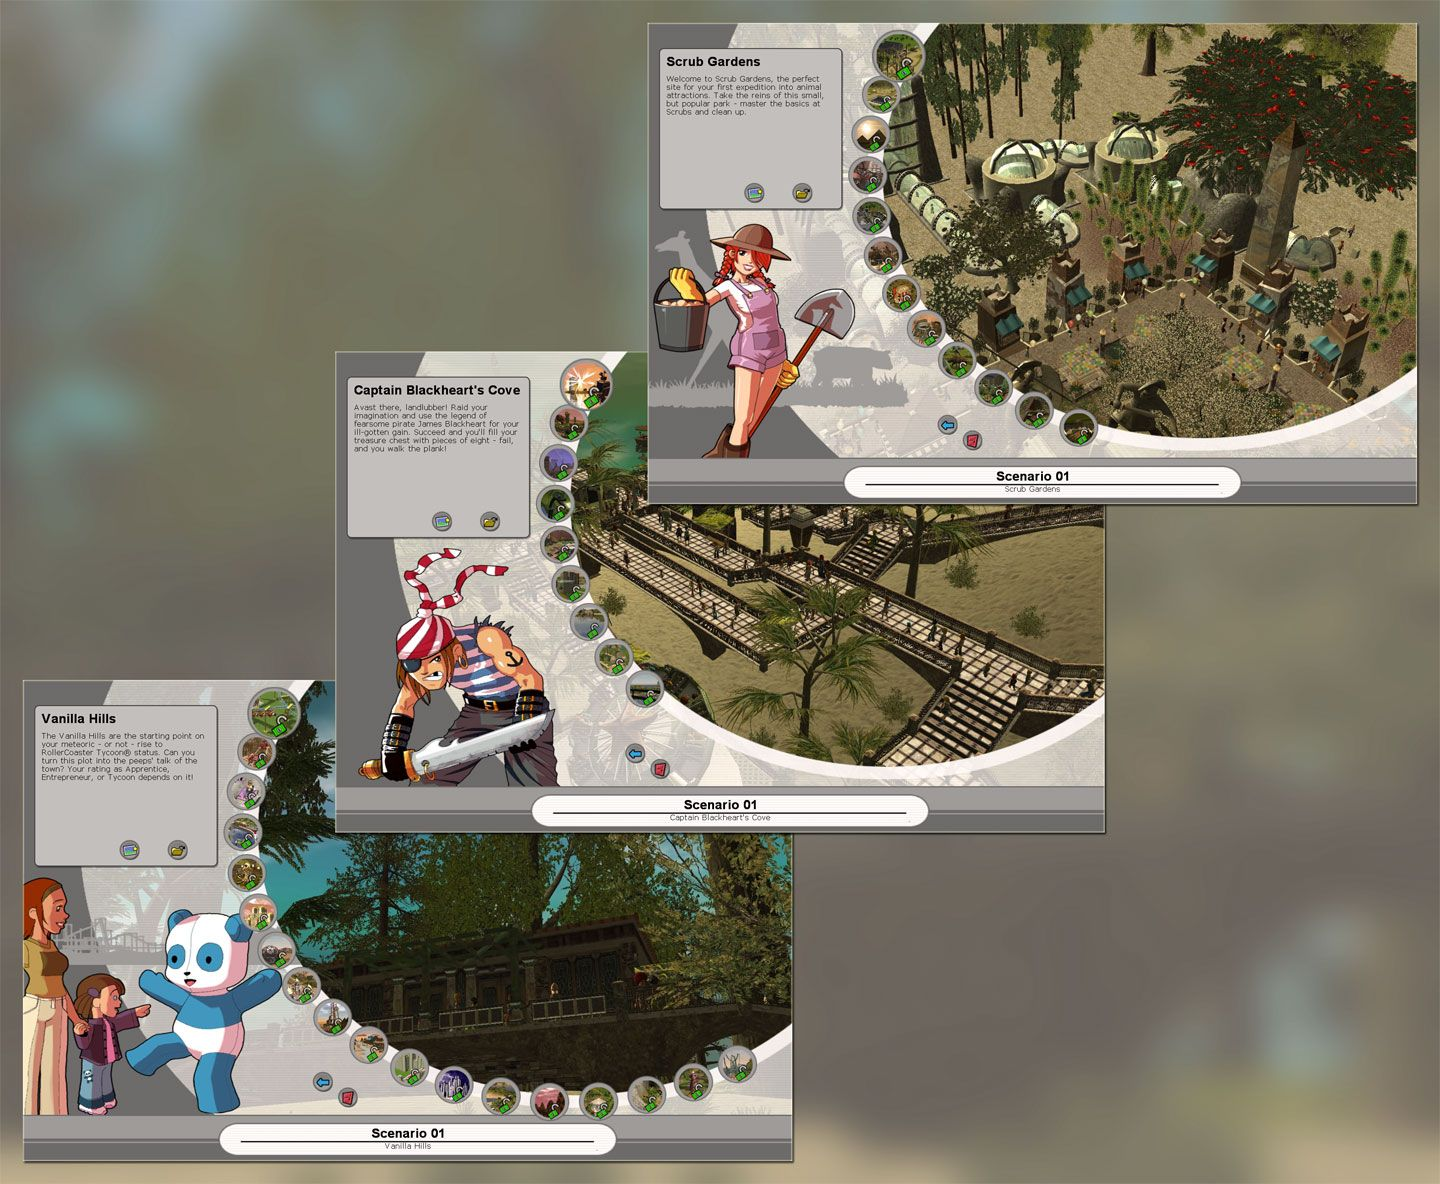 Repeat Image Displaying Campaign Expansion Headers Showing All Missions Unlocked for FlightToAtlantis.net: RCT3 FAQ: How To Unlock All Campaign Scenarios